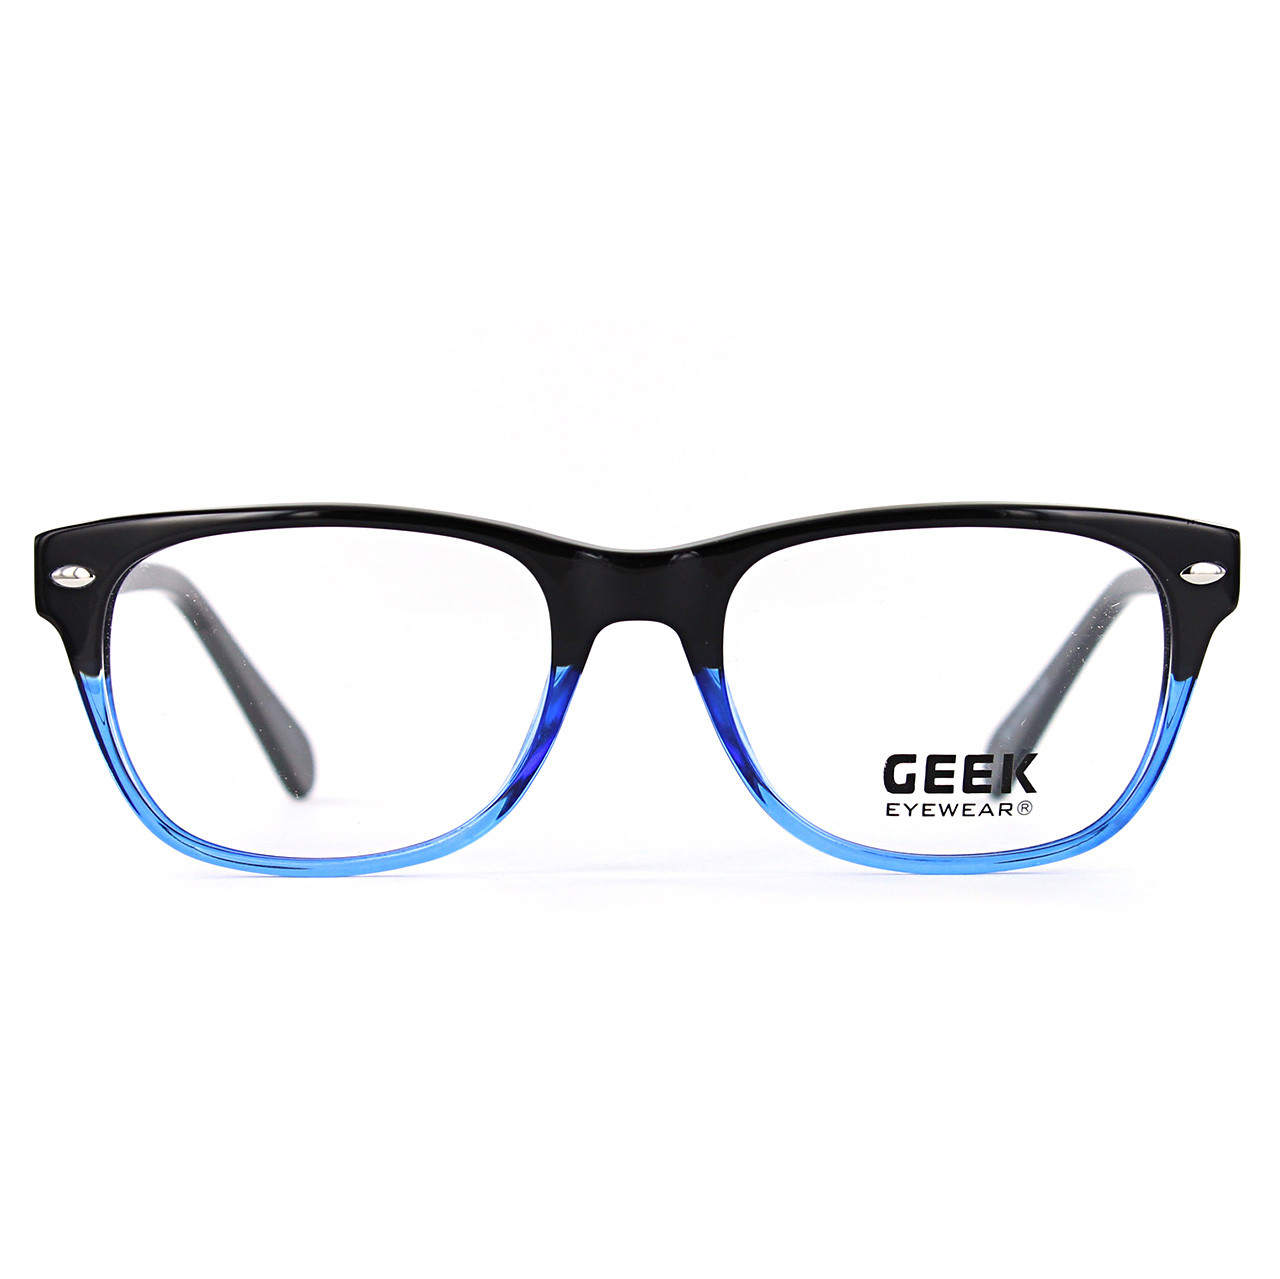 GEEK Eyewear Geek Gamer